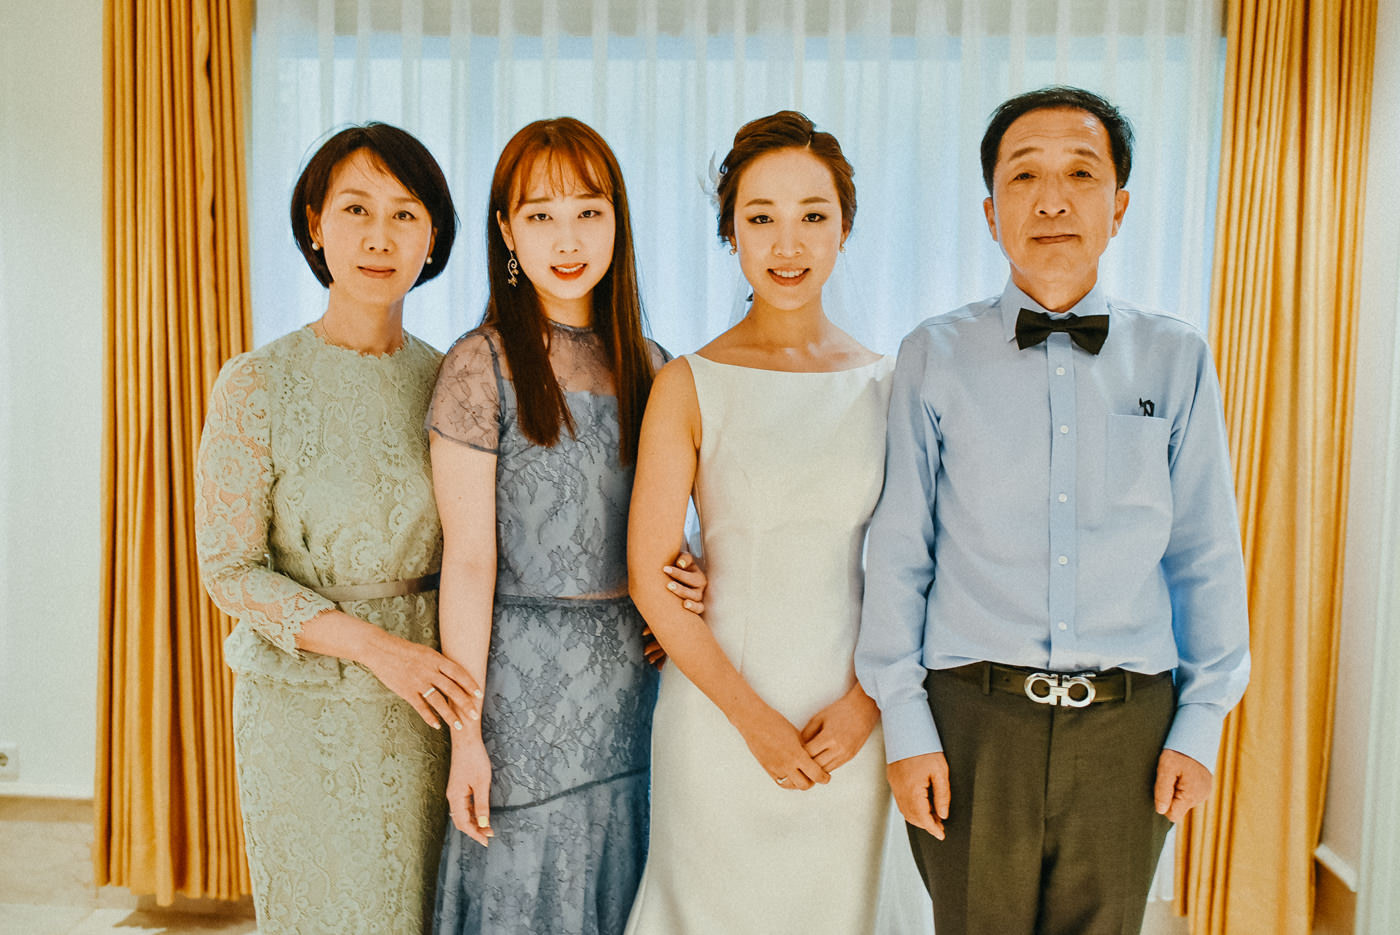 the bride and family group portrait